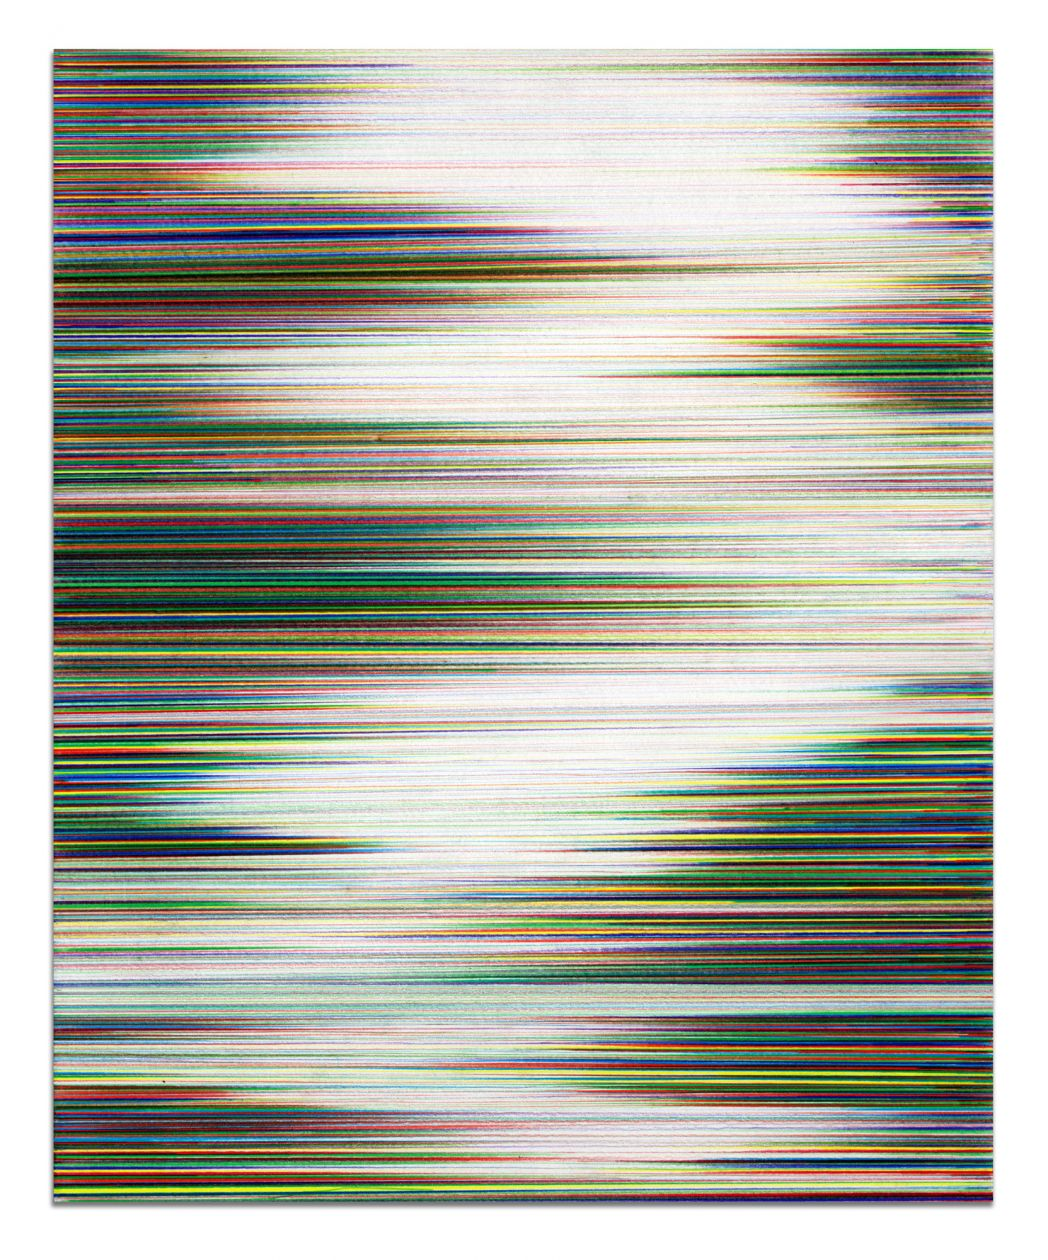 Waves in full color No. 1 (2017) by John Whitten